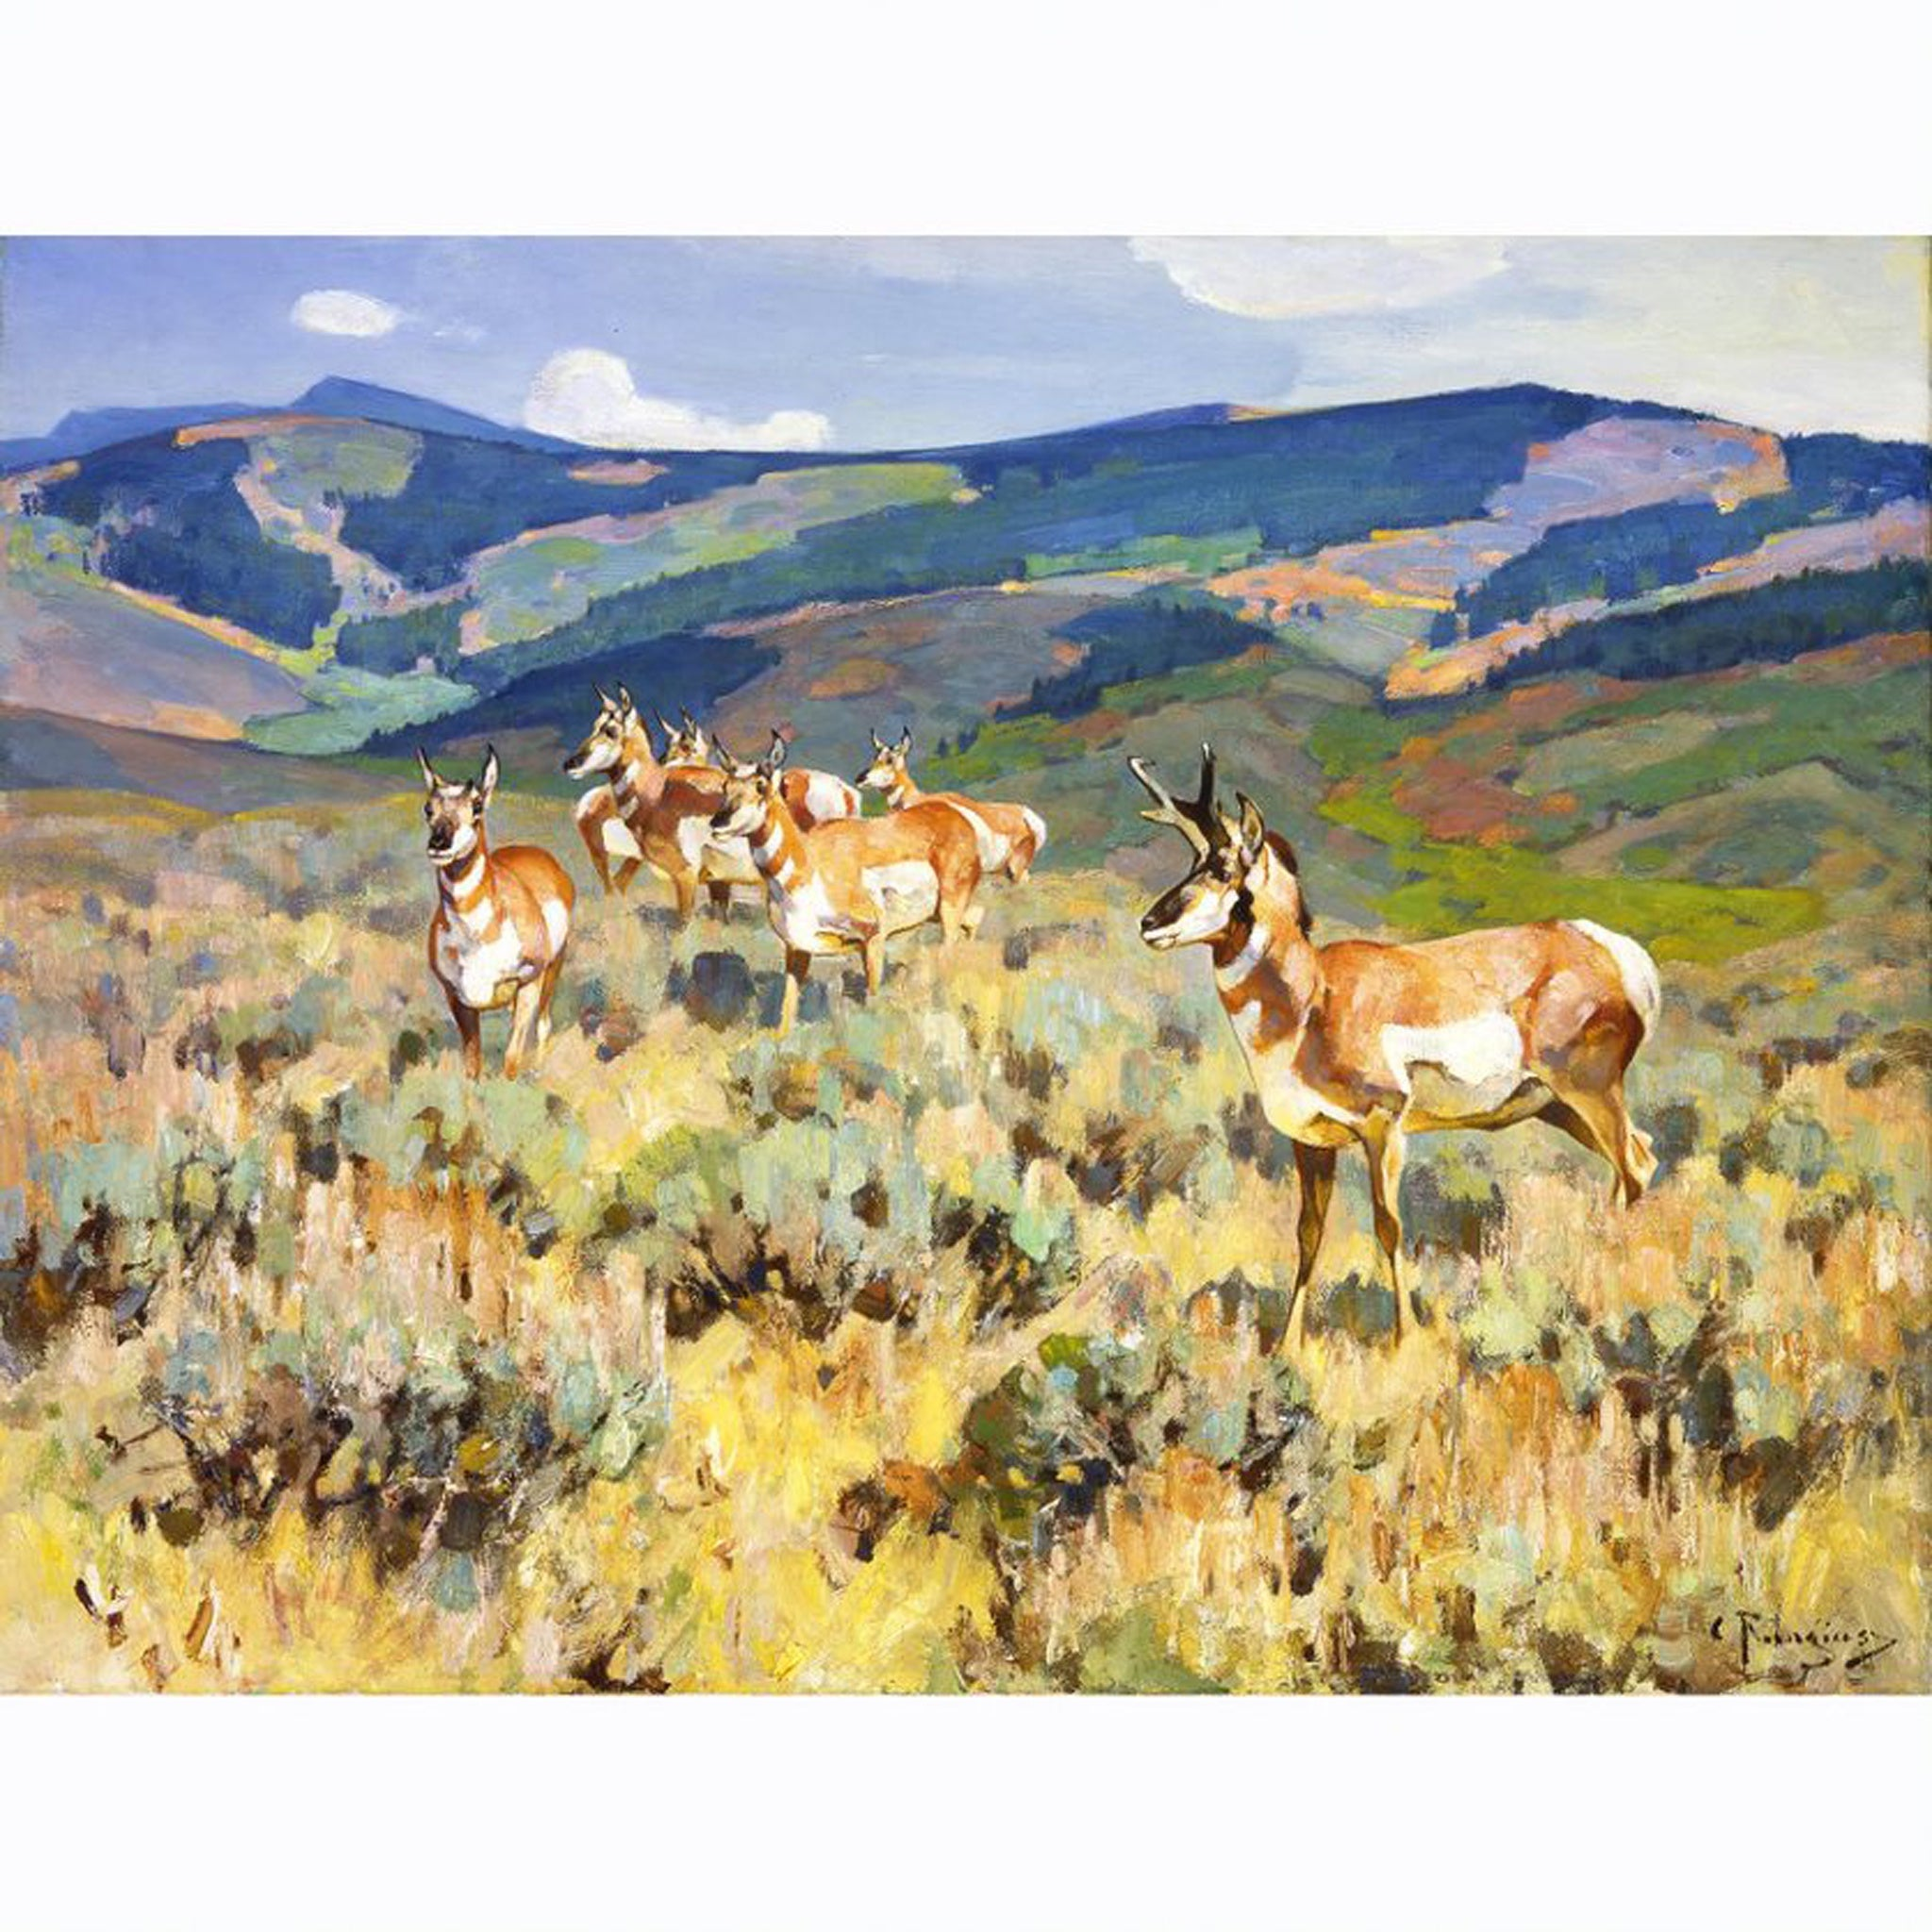 In the Foothills (Antelope) by Carl Rungius